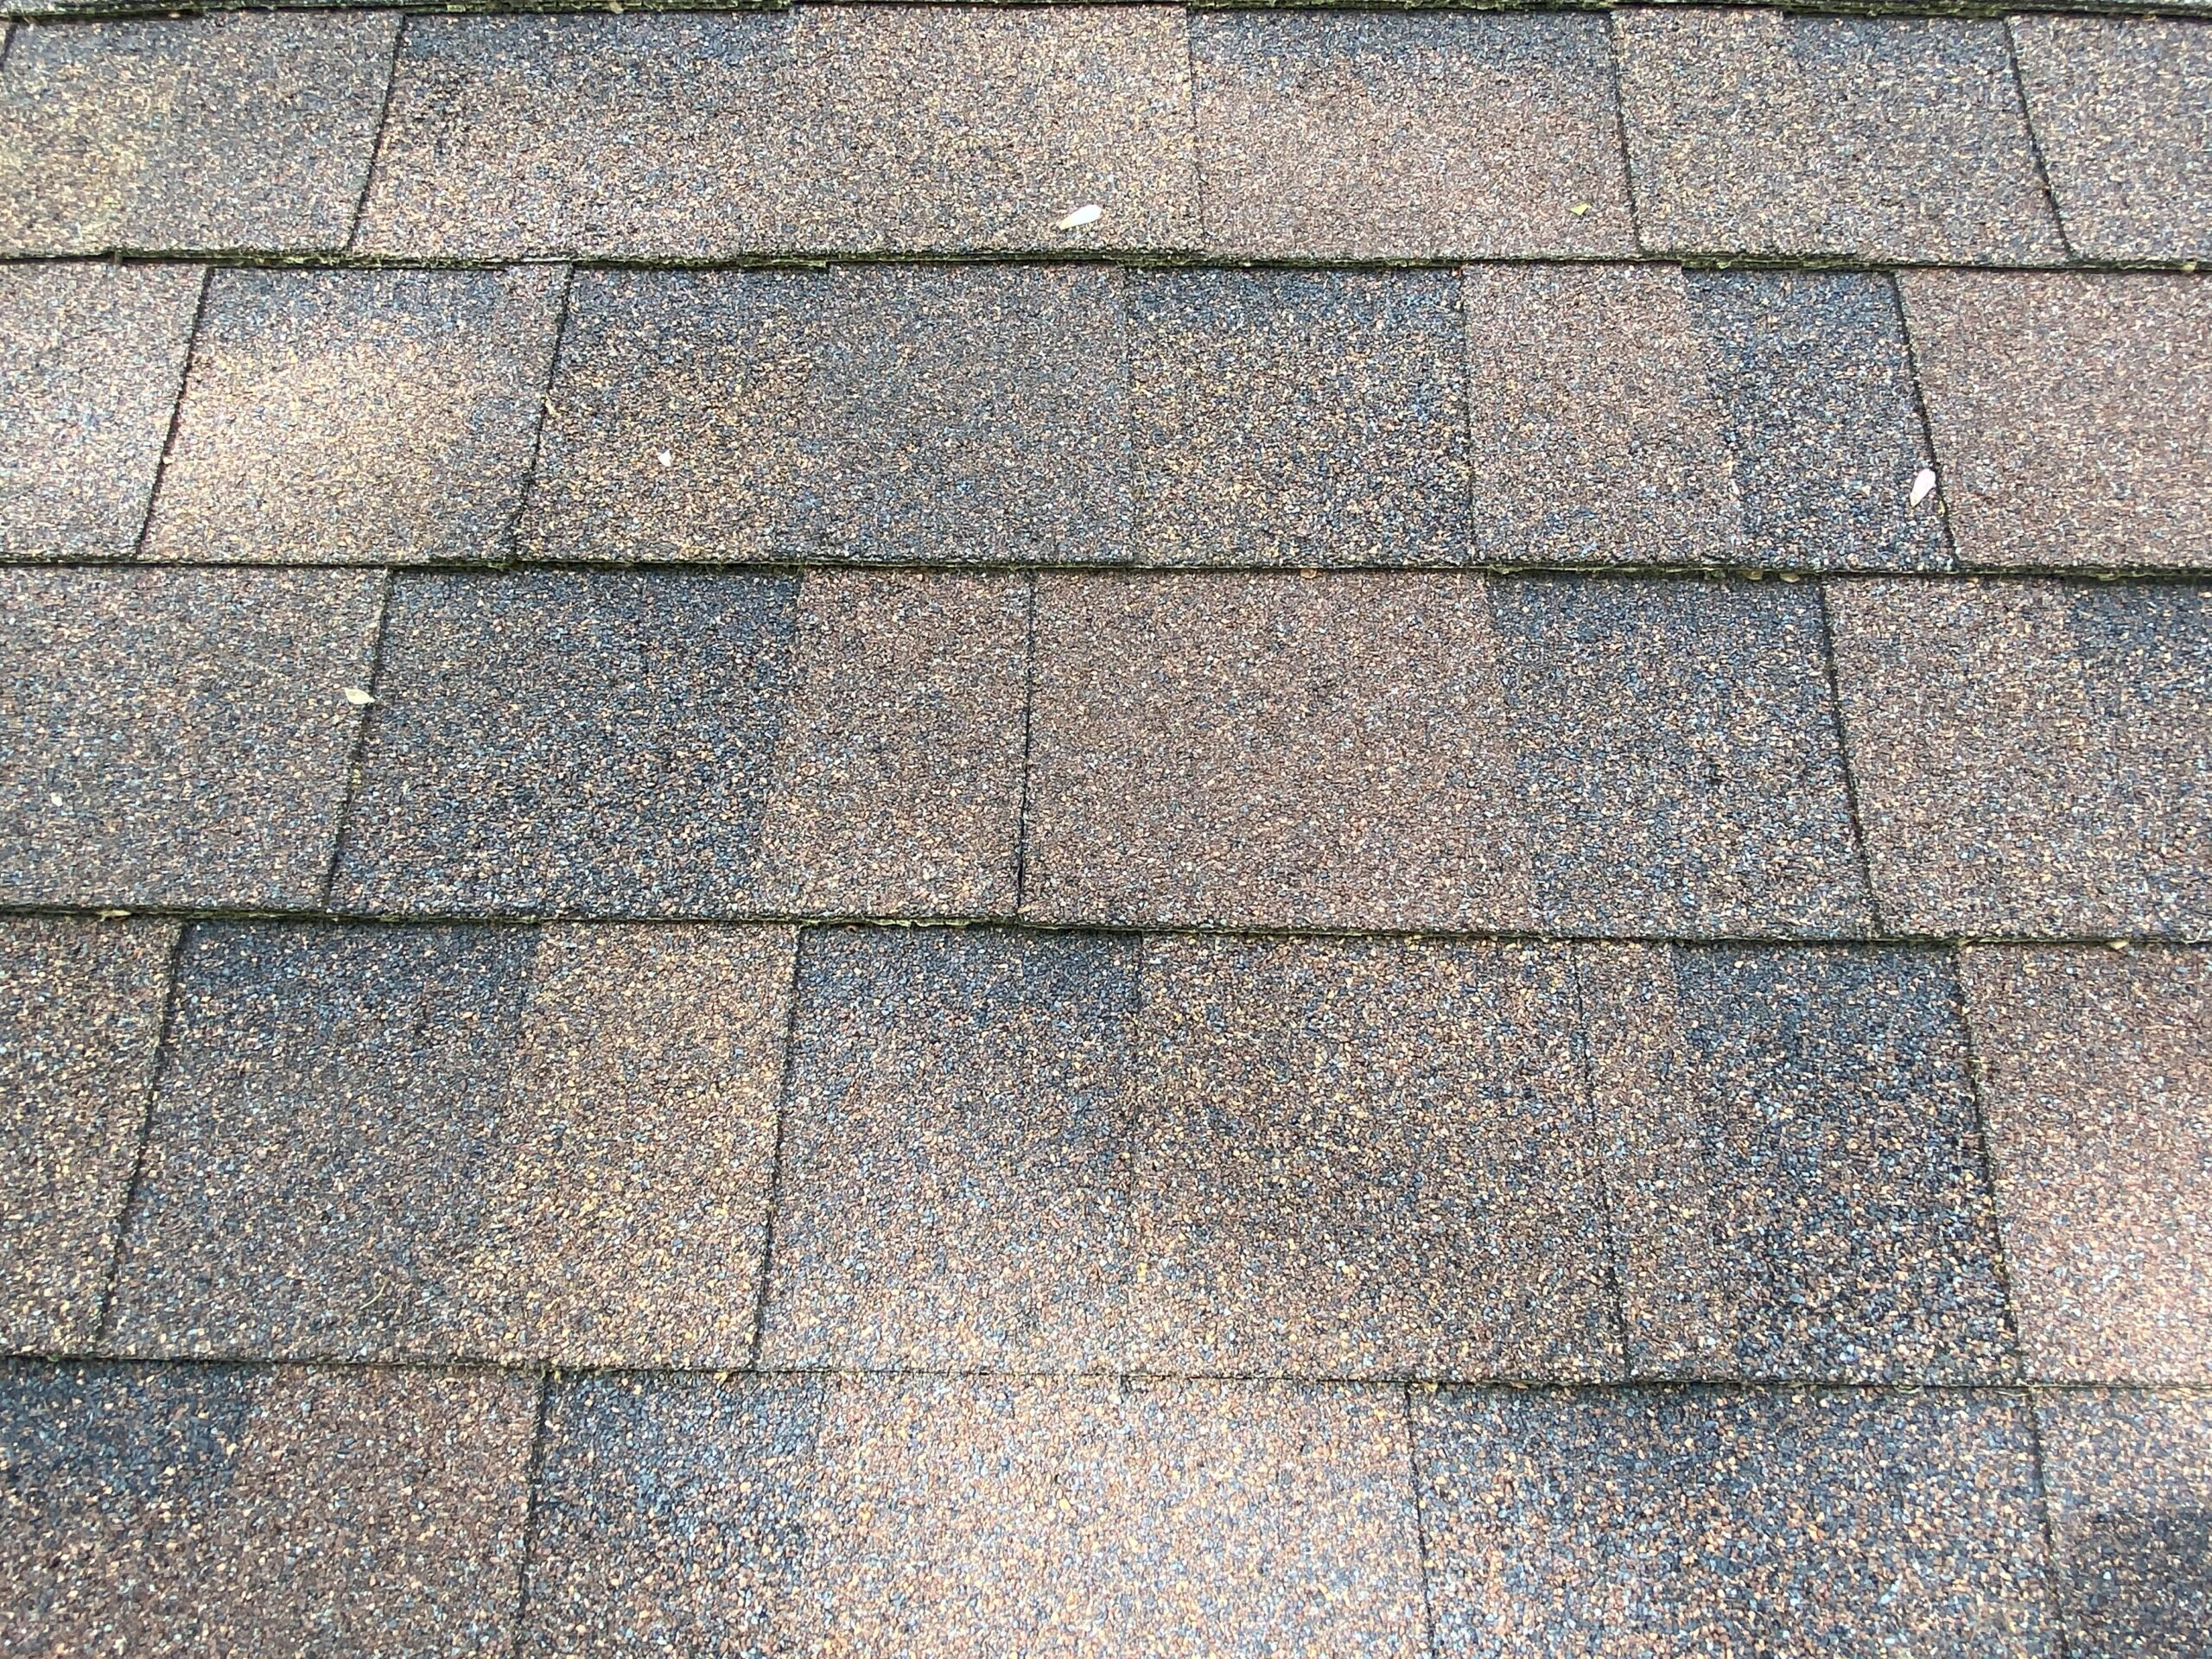 This is a picture of shingles that have been laid out correctly